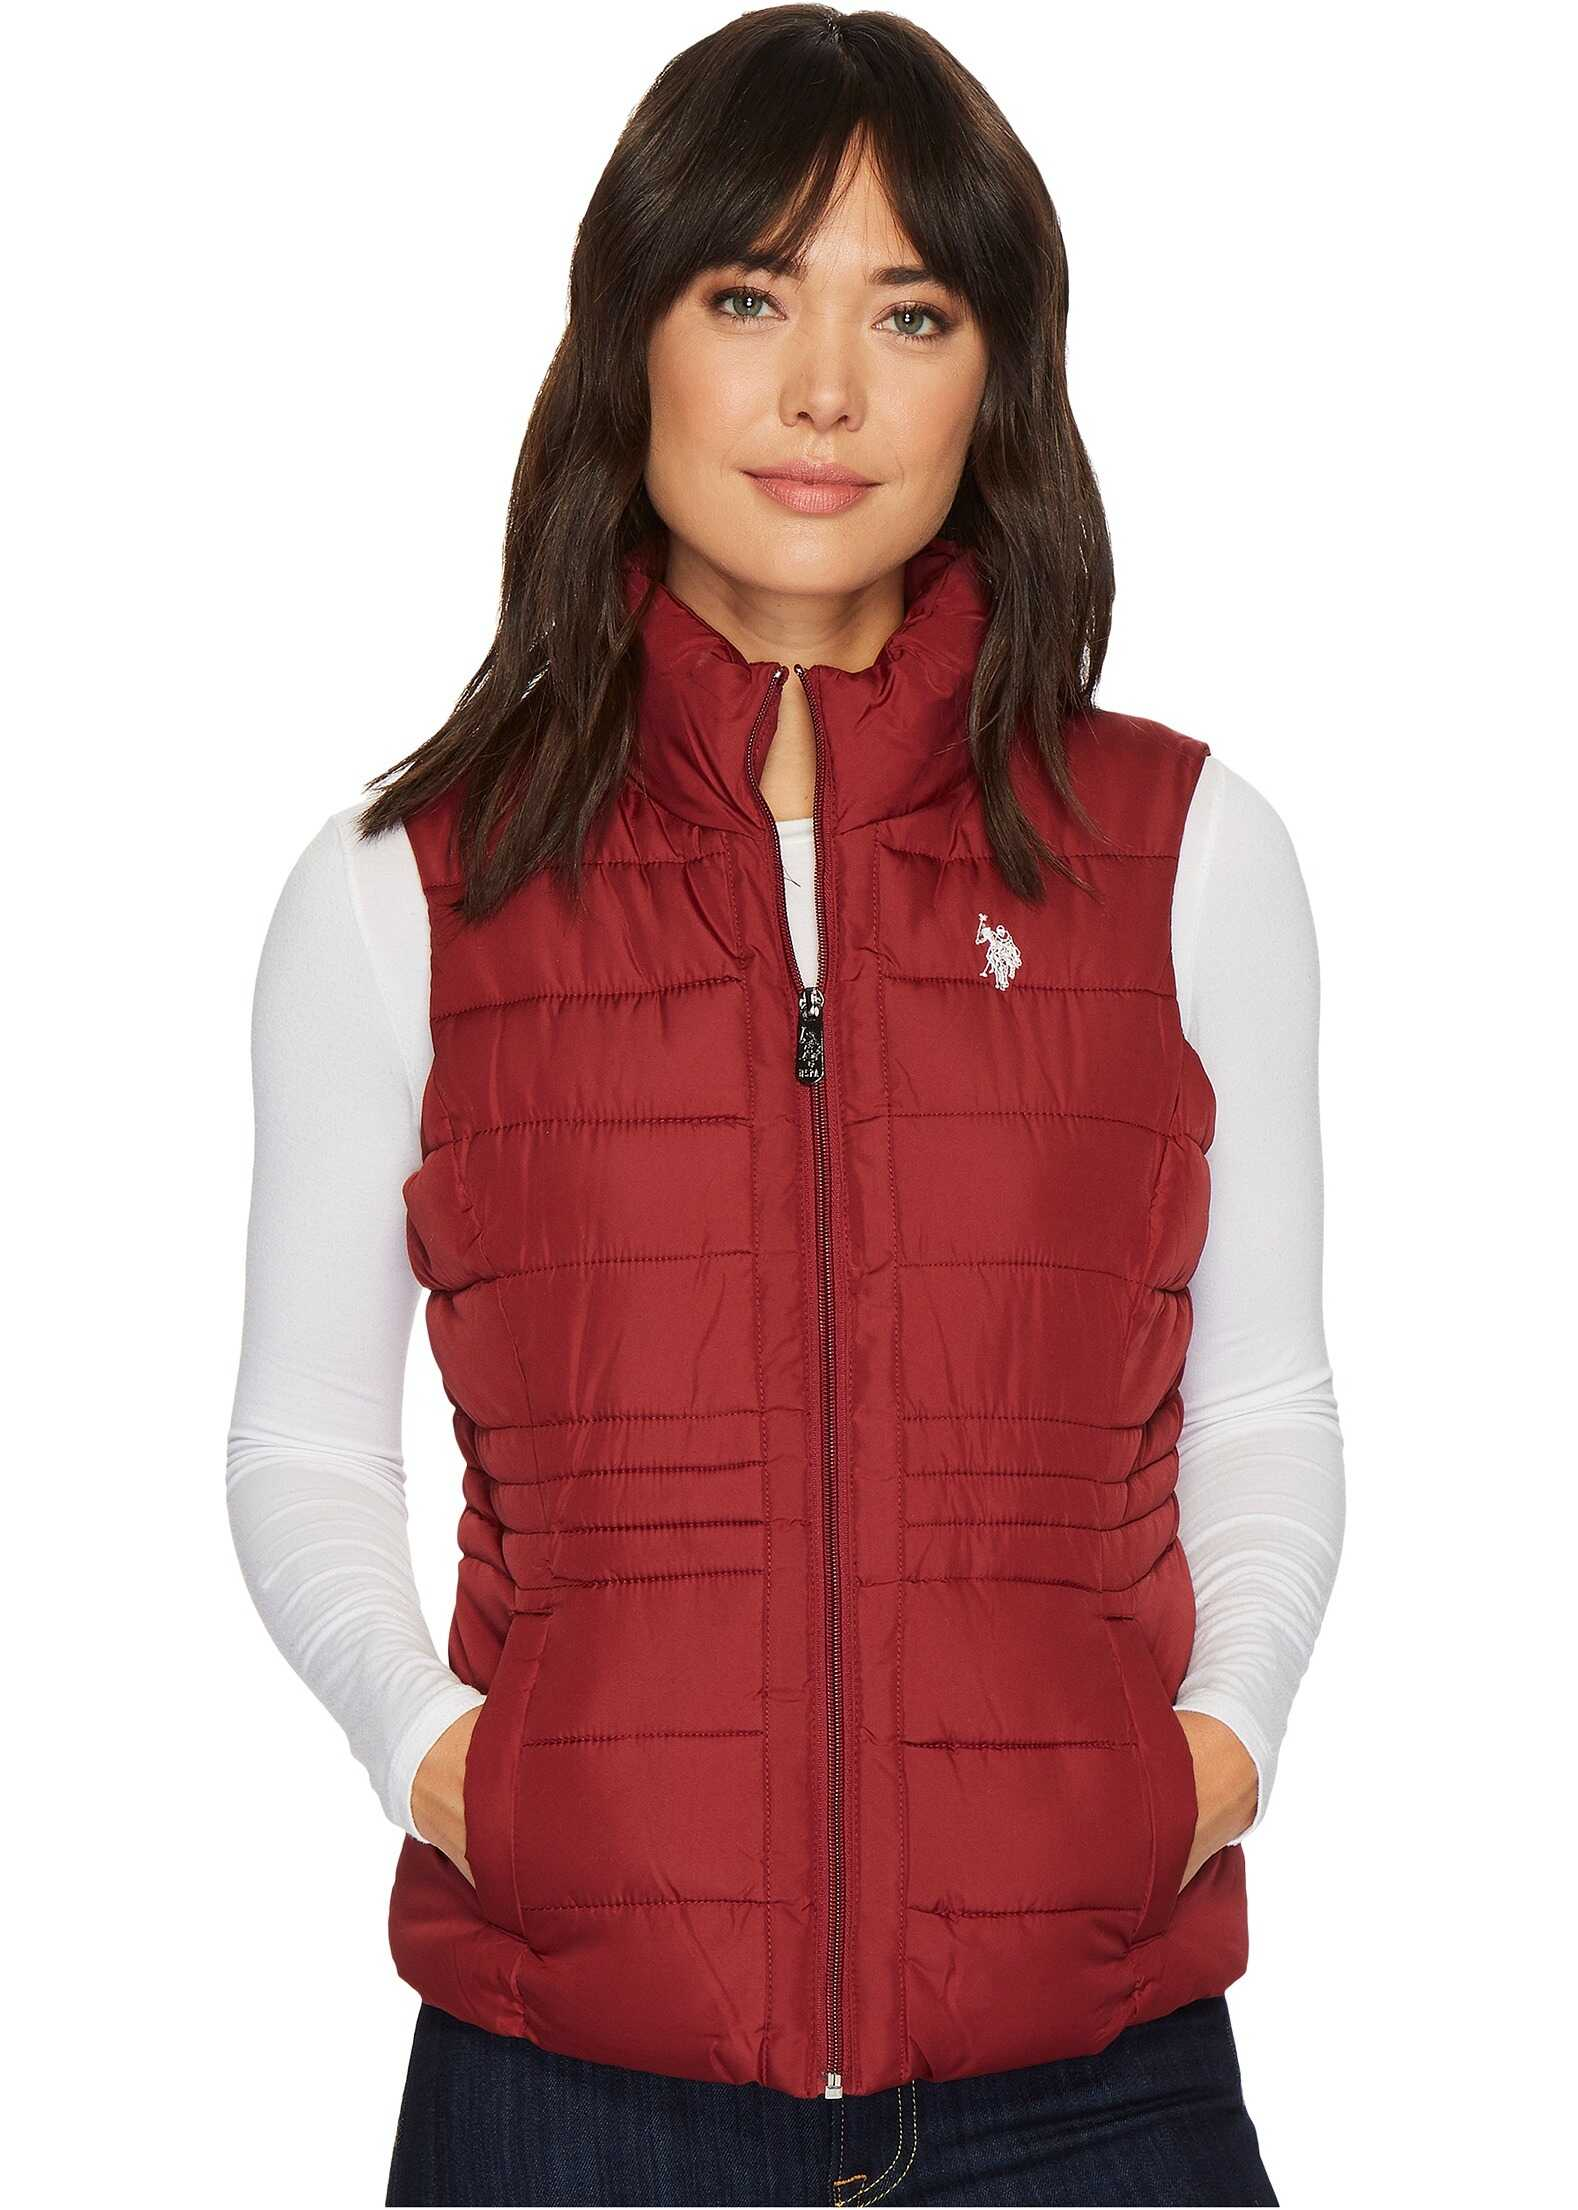 U.S. POLO ASSN. Quilted Vest with Sherpa Lining Rumba Red